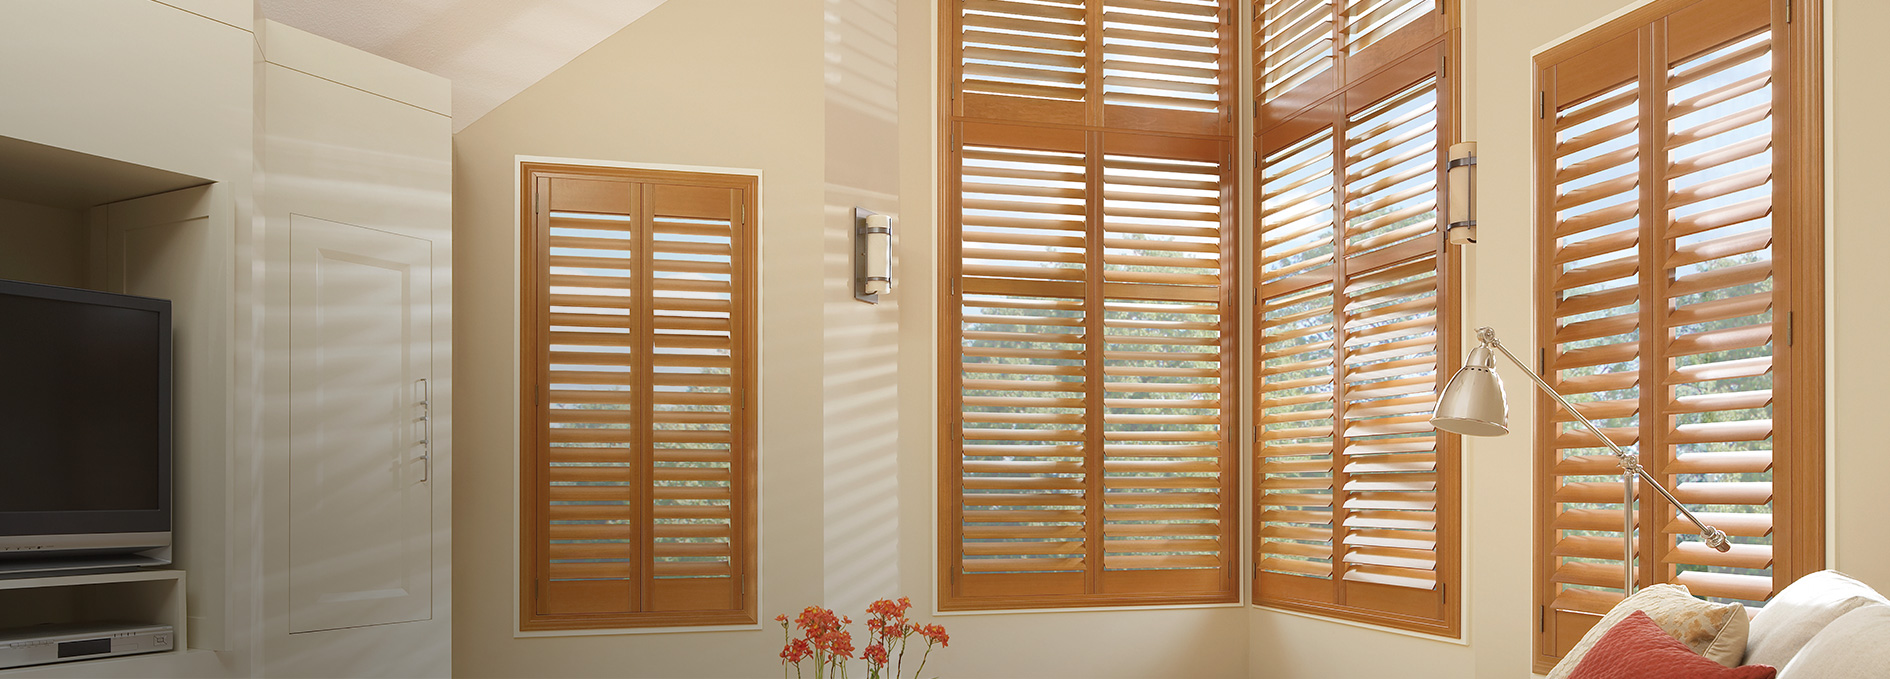 Hunter Douglas Newstyle 174 Hybrid Shutters Today S Window